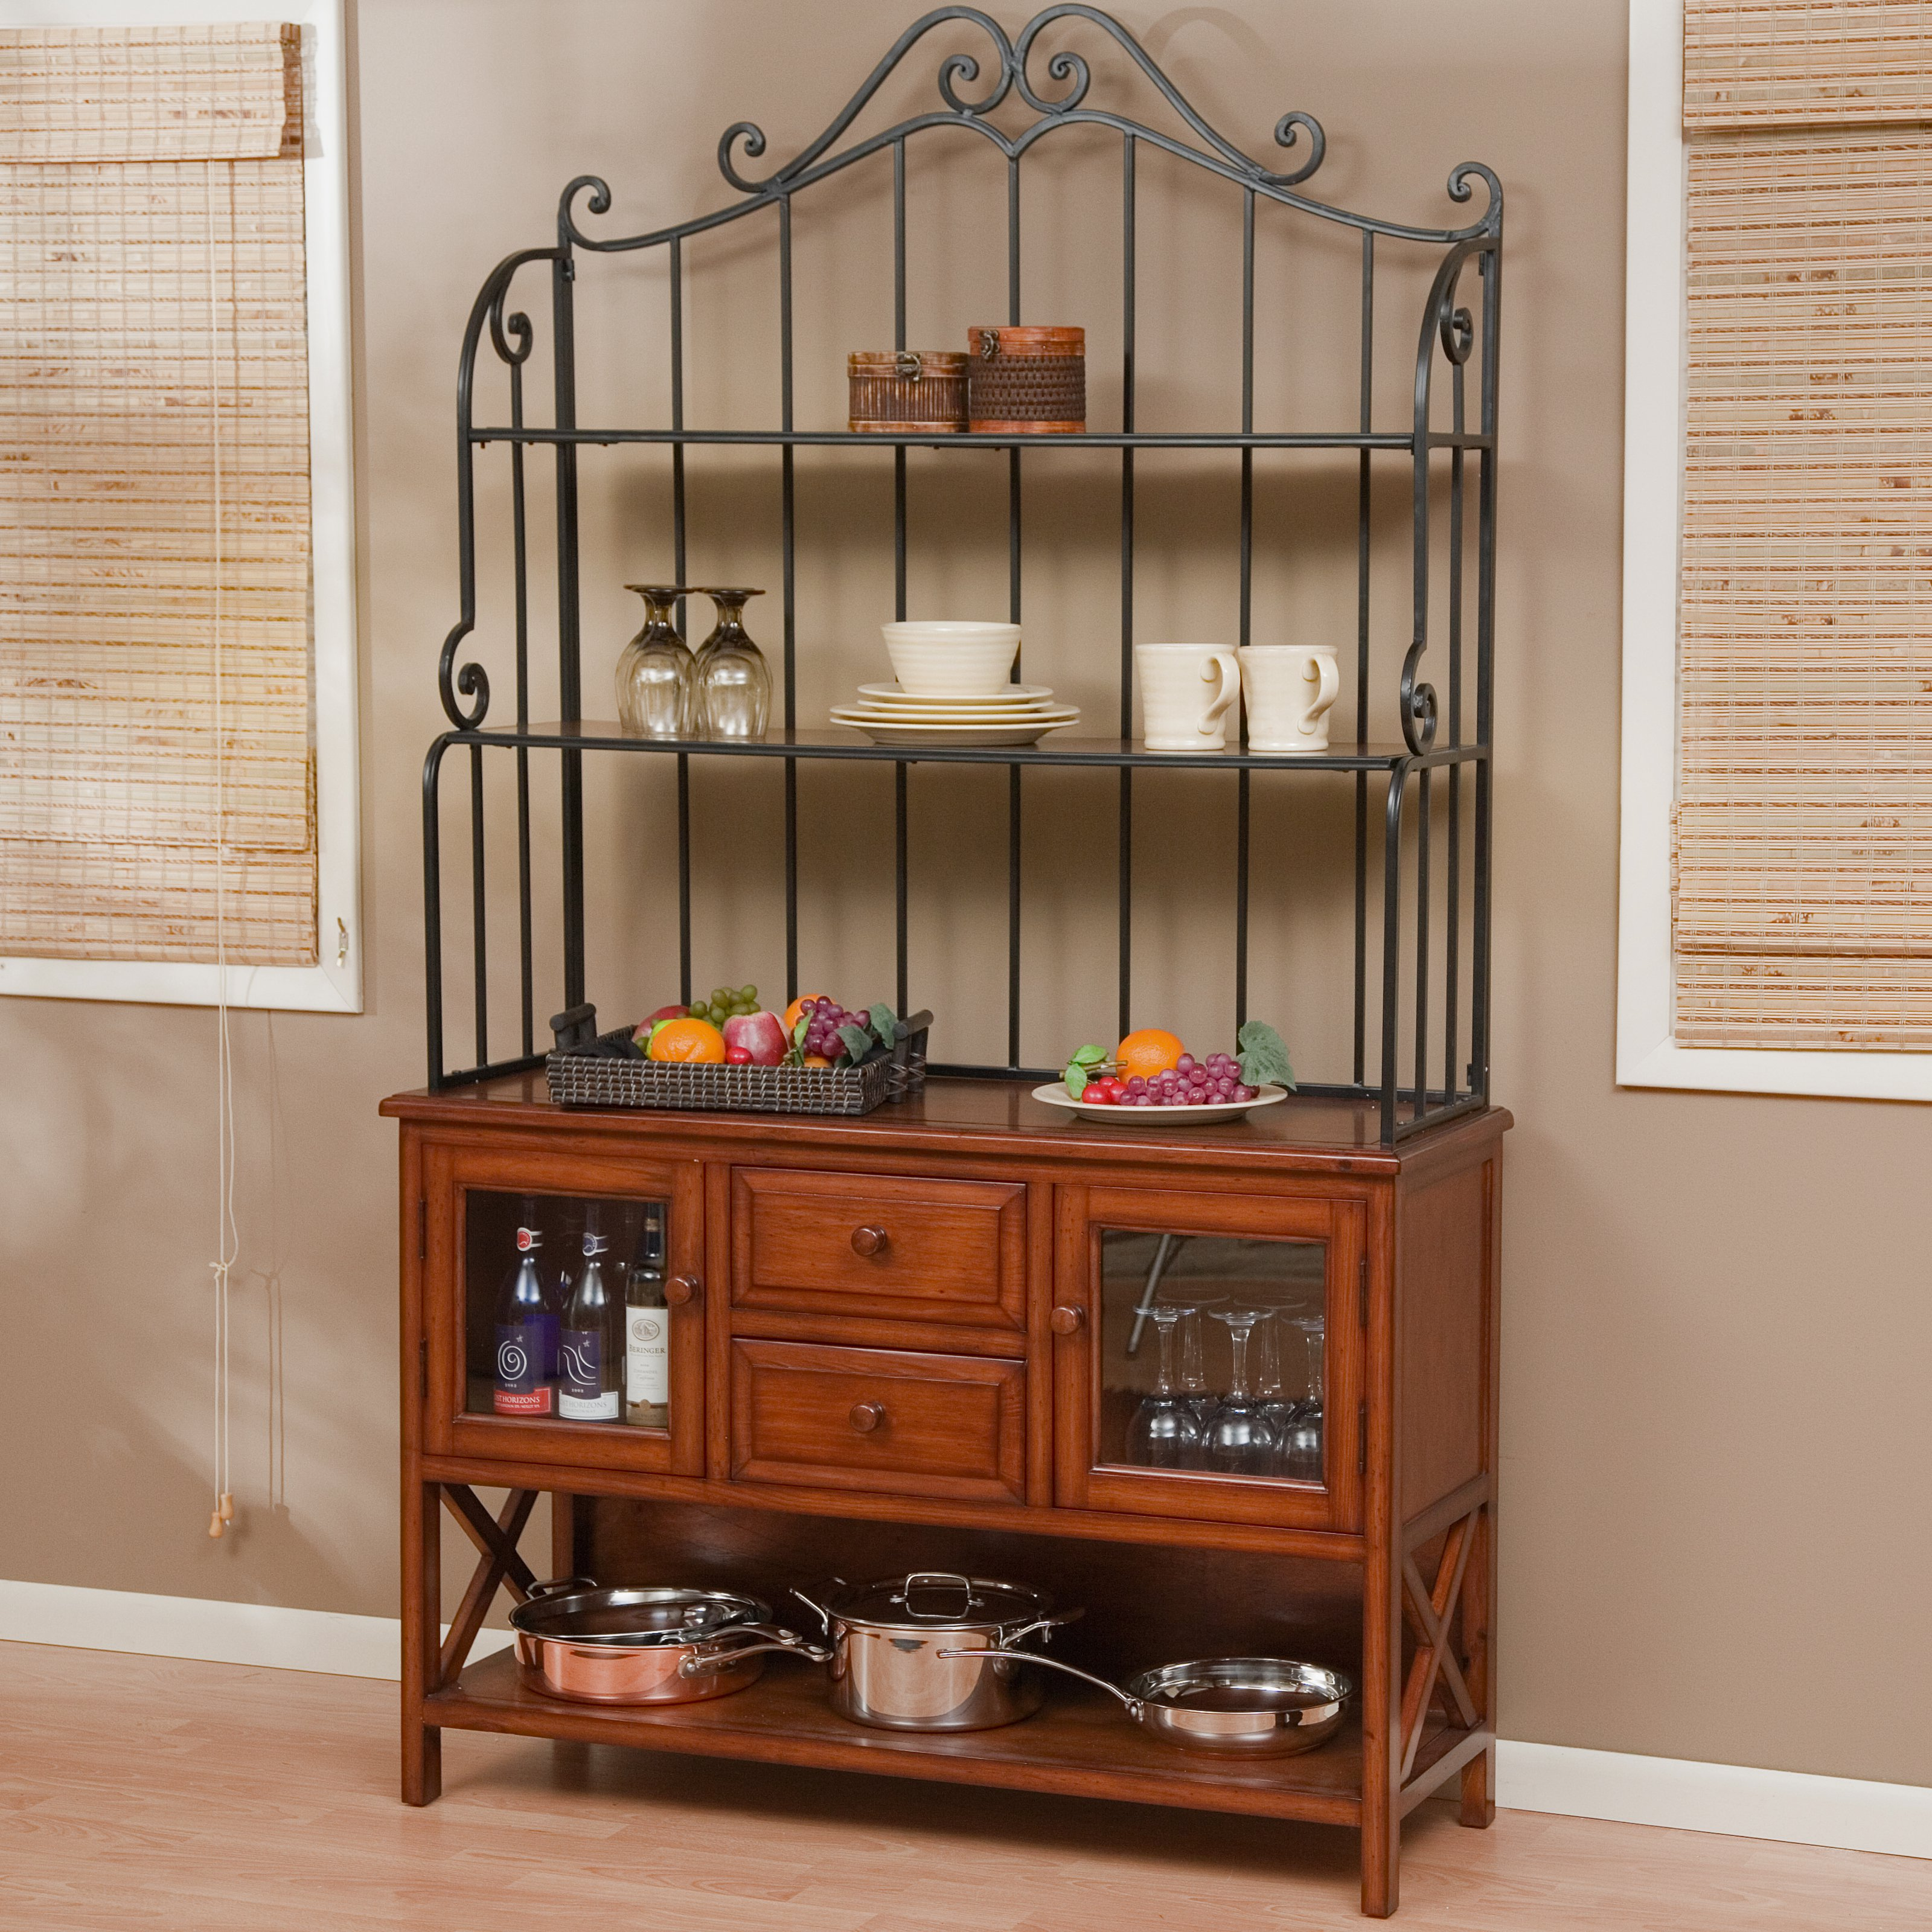 Belham Living Hampton 47 Inch Wood Bakers Rack - Heritage Oak